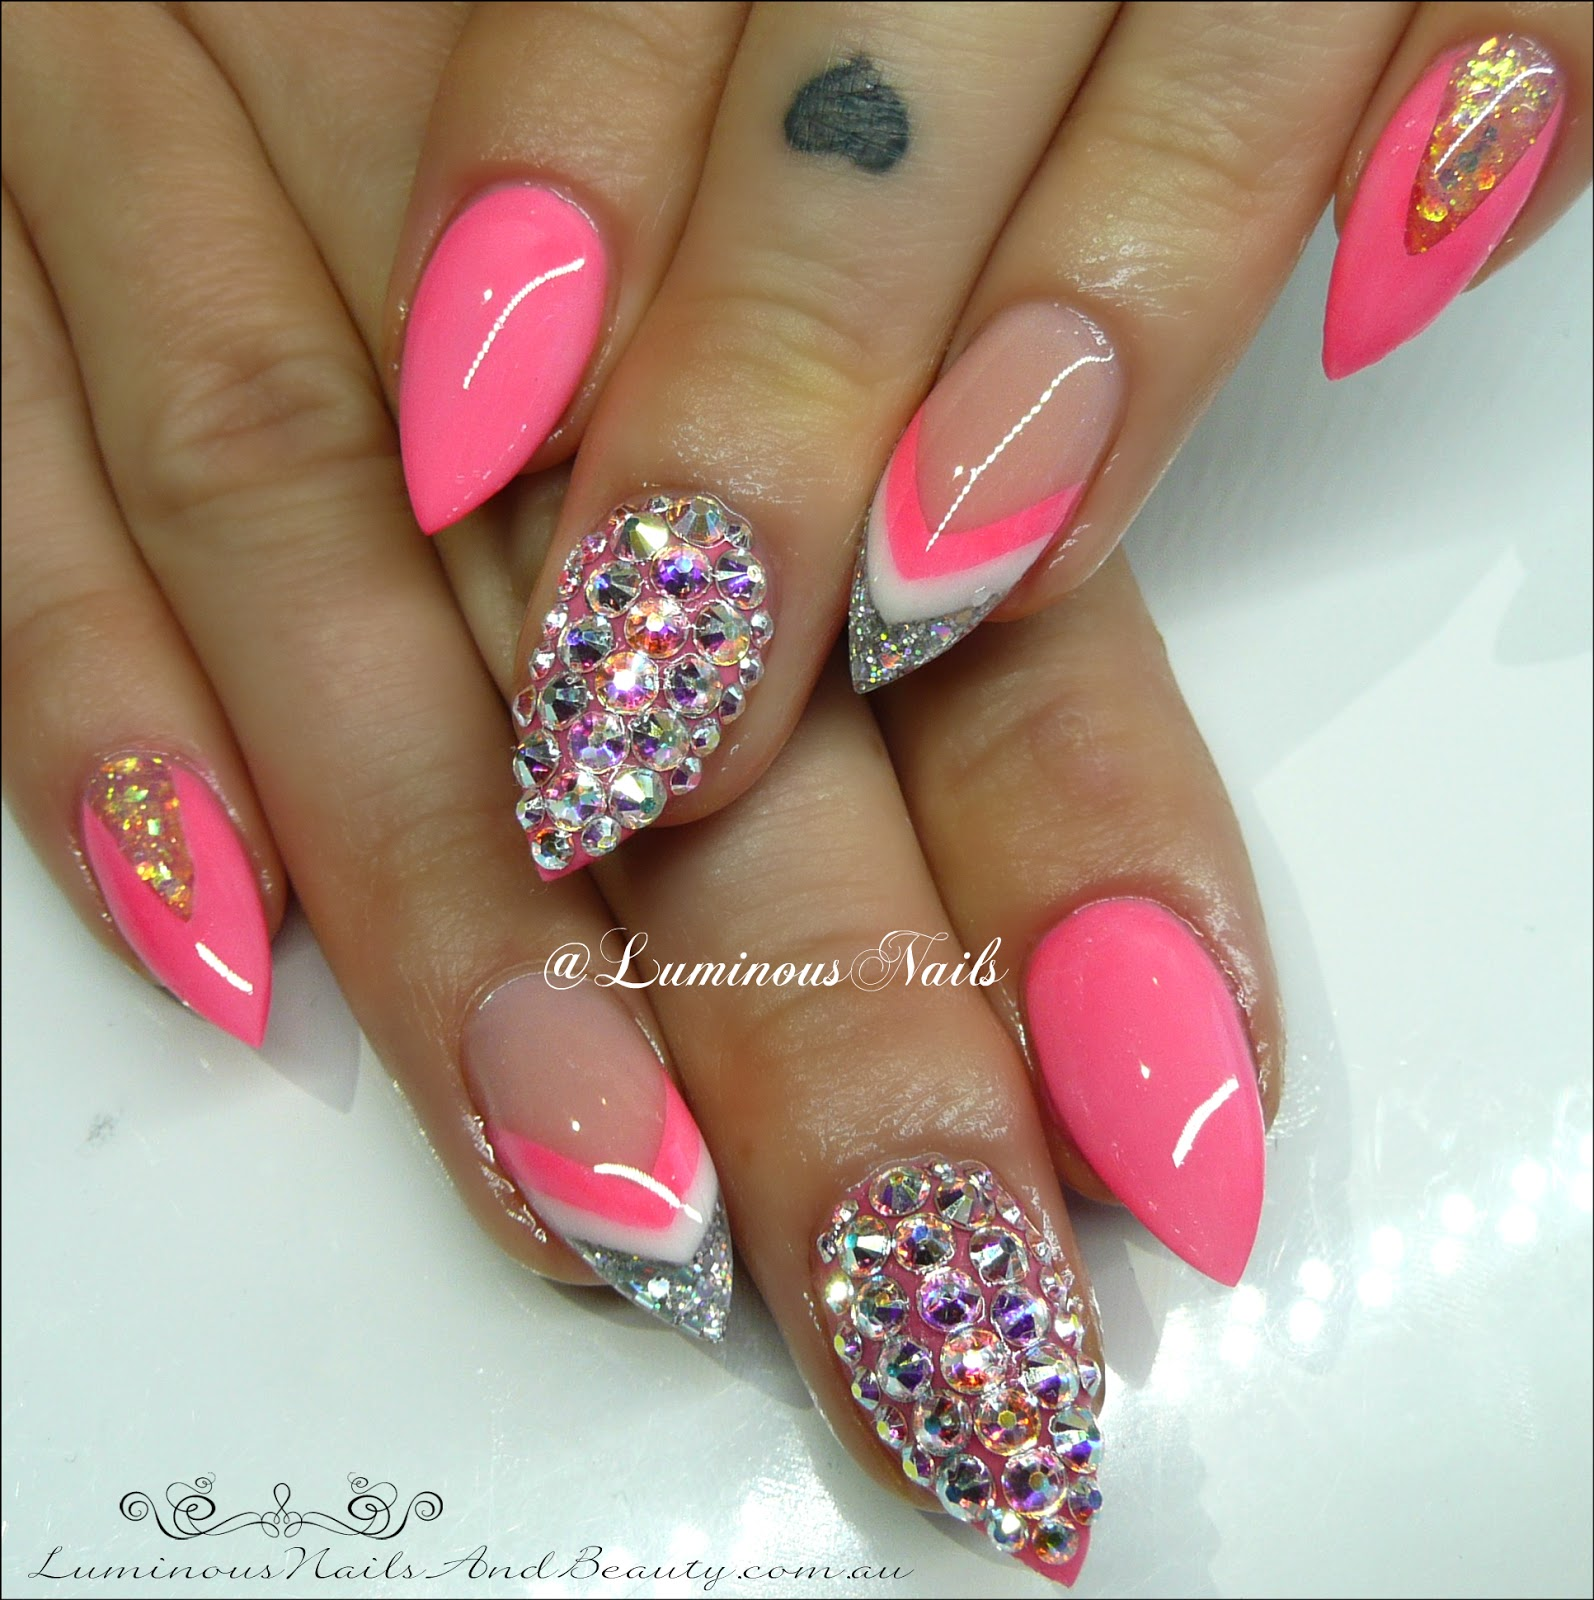 Luminous Nails: Neon Pink, White & Silver Acrylic Nails with ...